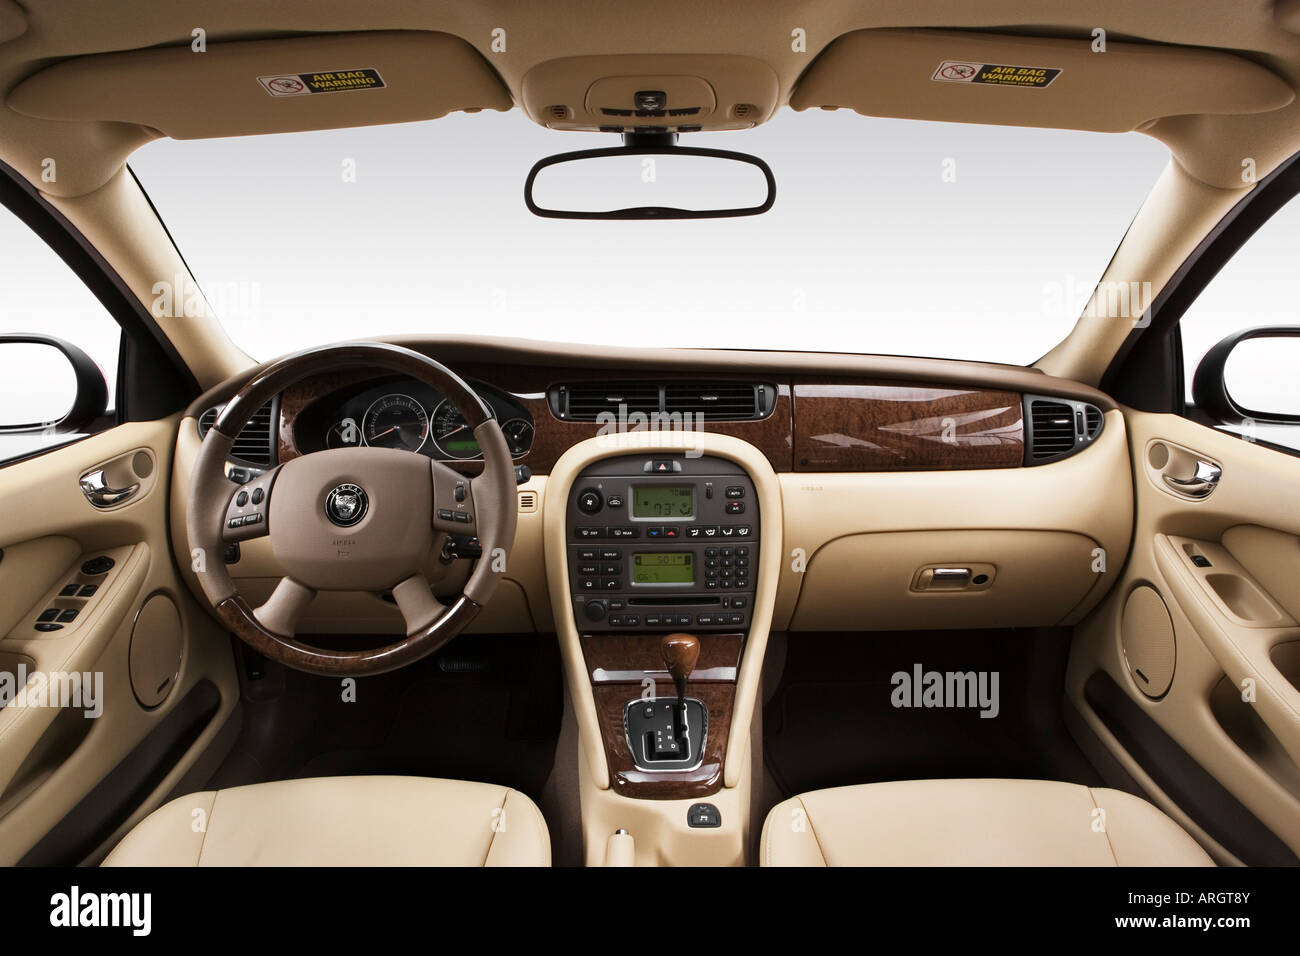 2007 jaguar x type sportwagon in red dashboard center console stock photo royalty free image. Black Bedroom Furniture Sets. Home Design Ideas